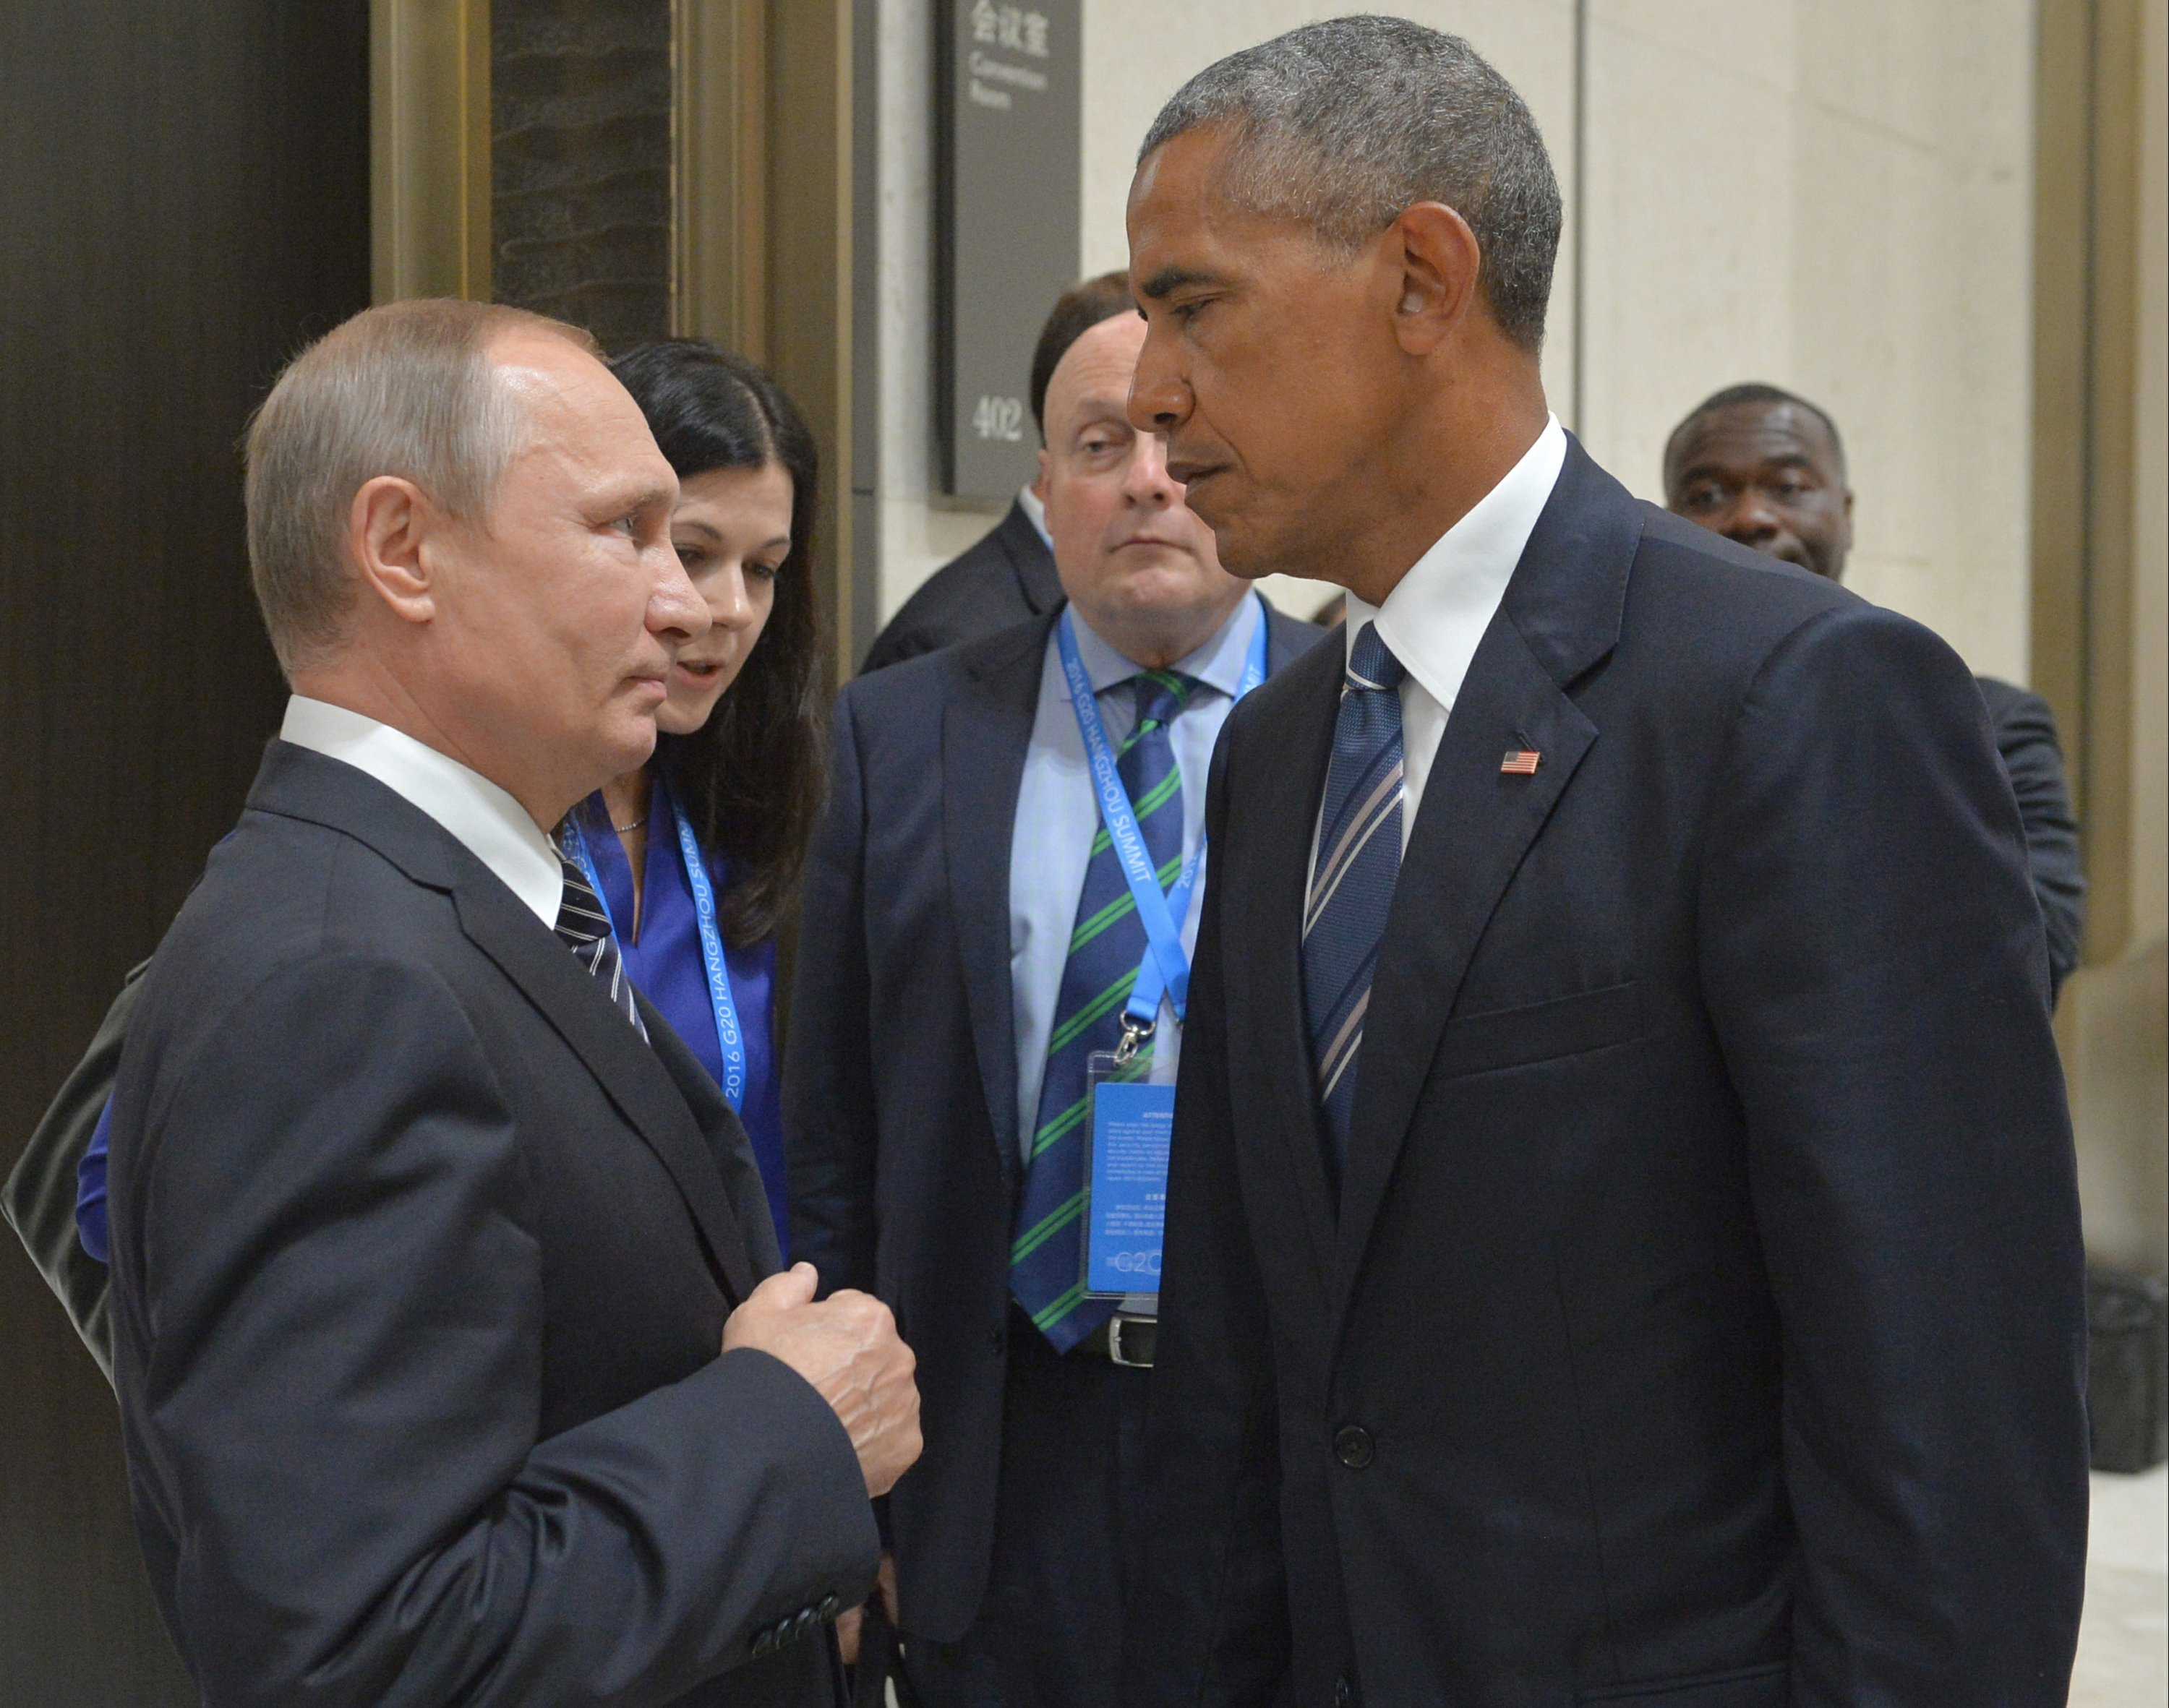 Russia accuses US of conducting 'scorched earth' policy